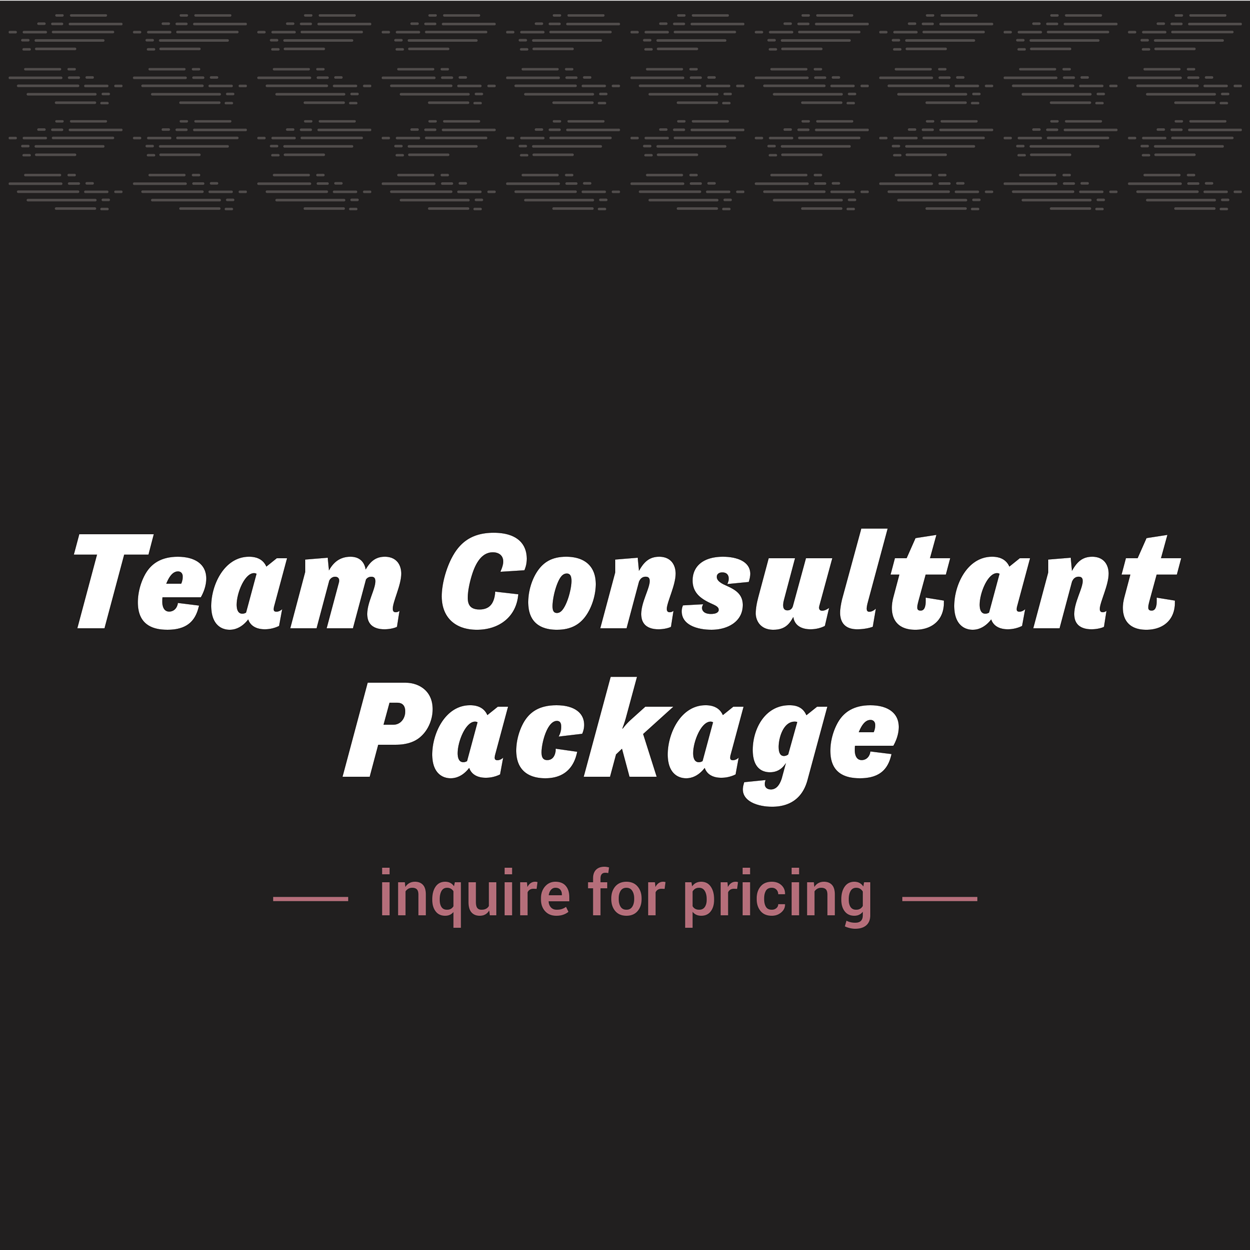 Team Consultant Package | Shakeout LLC